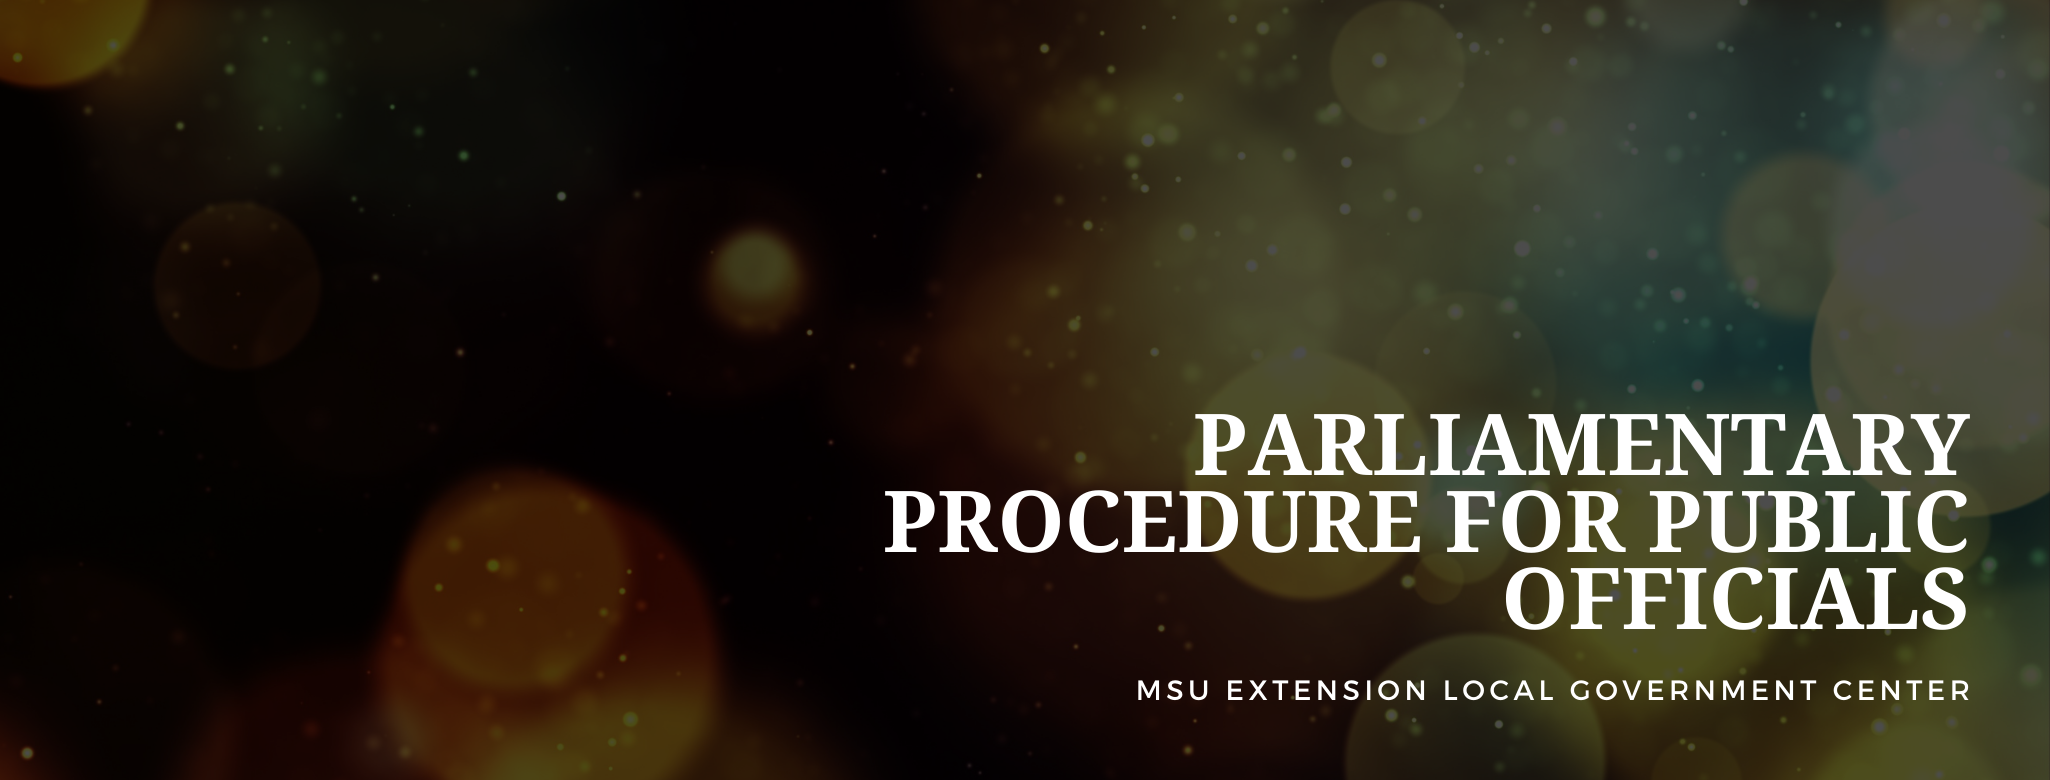 Parliamentary Procedure for Public Officials online course MSU Extension Local Government Center